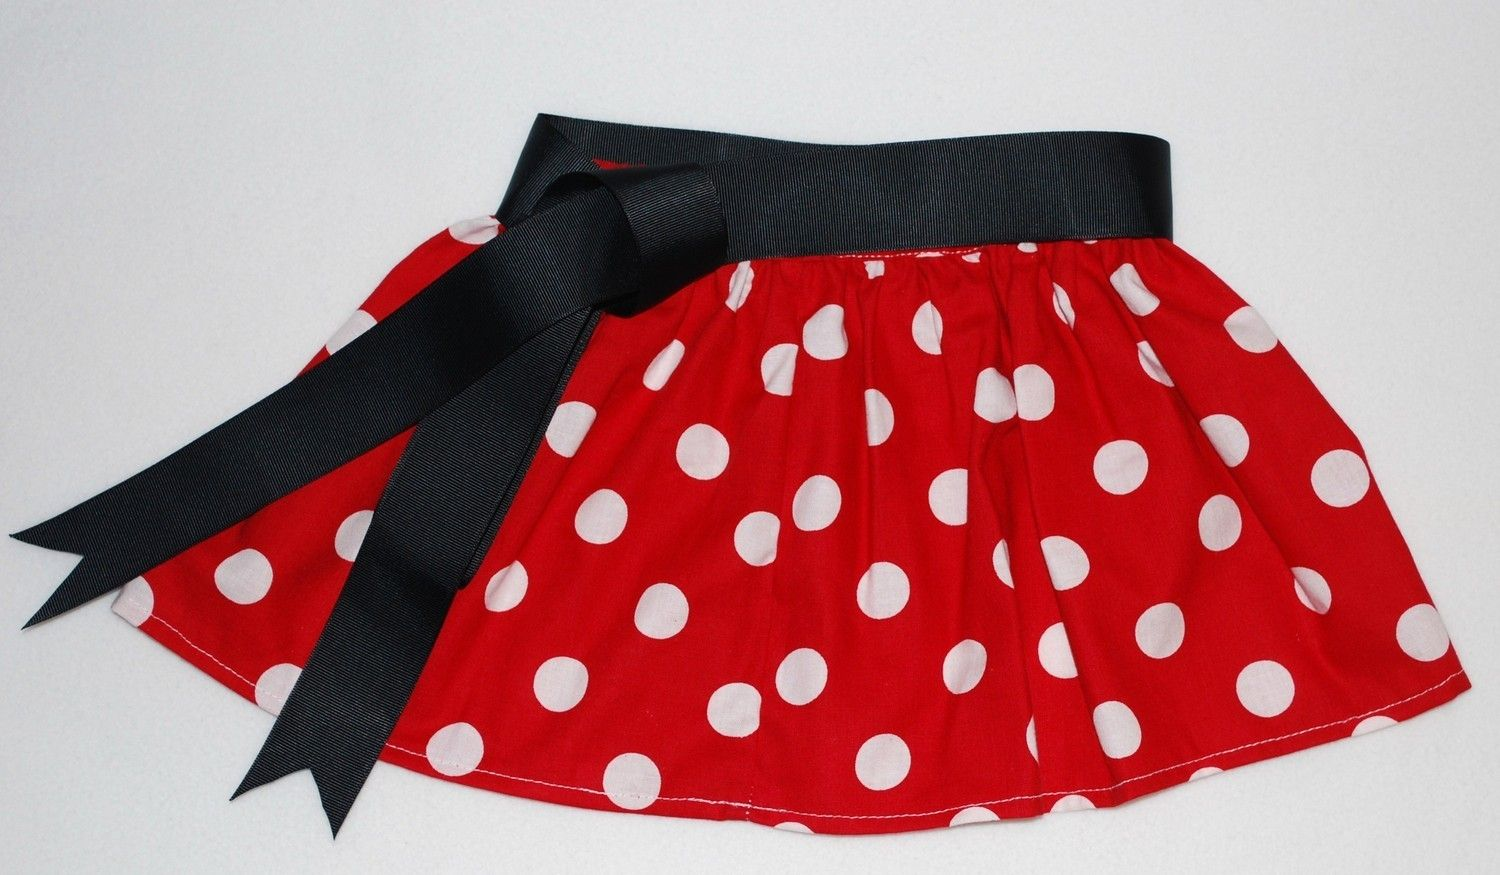 495d6fe60 Red Polka Dot Skirt Minnie Mouse Skirt Size 7/8 youth to Adult ...